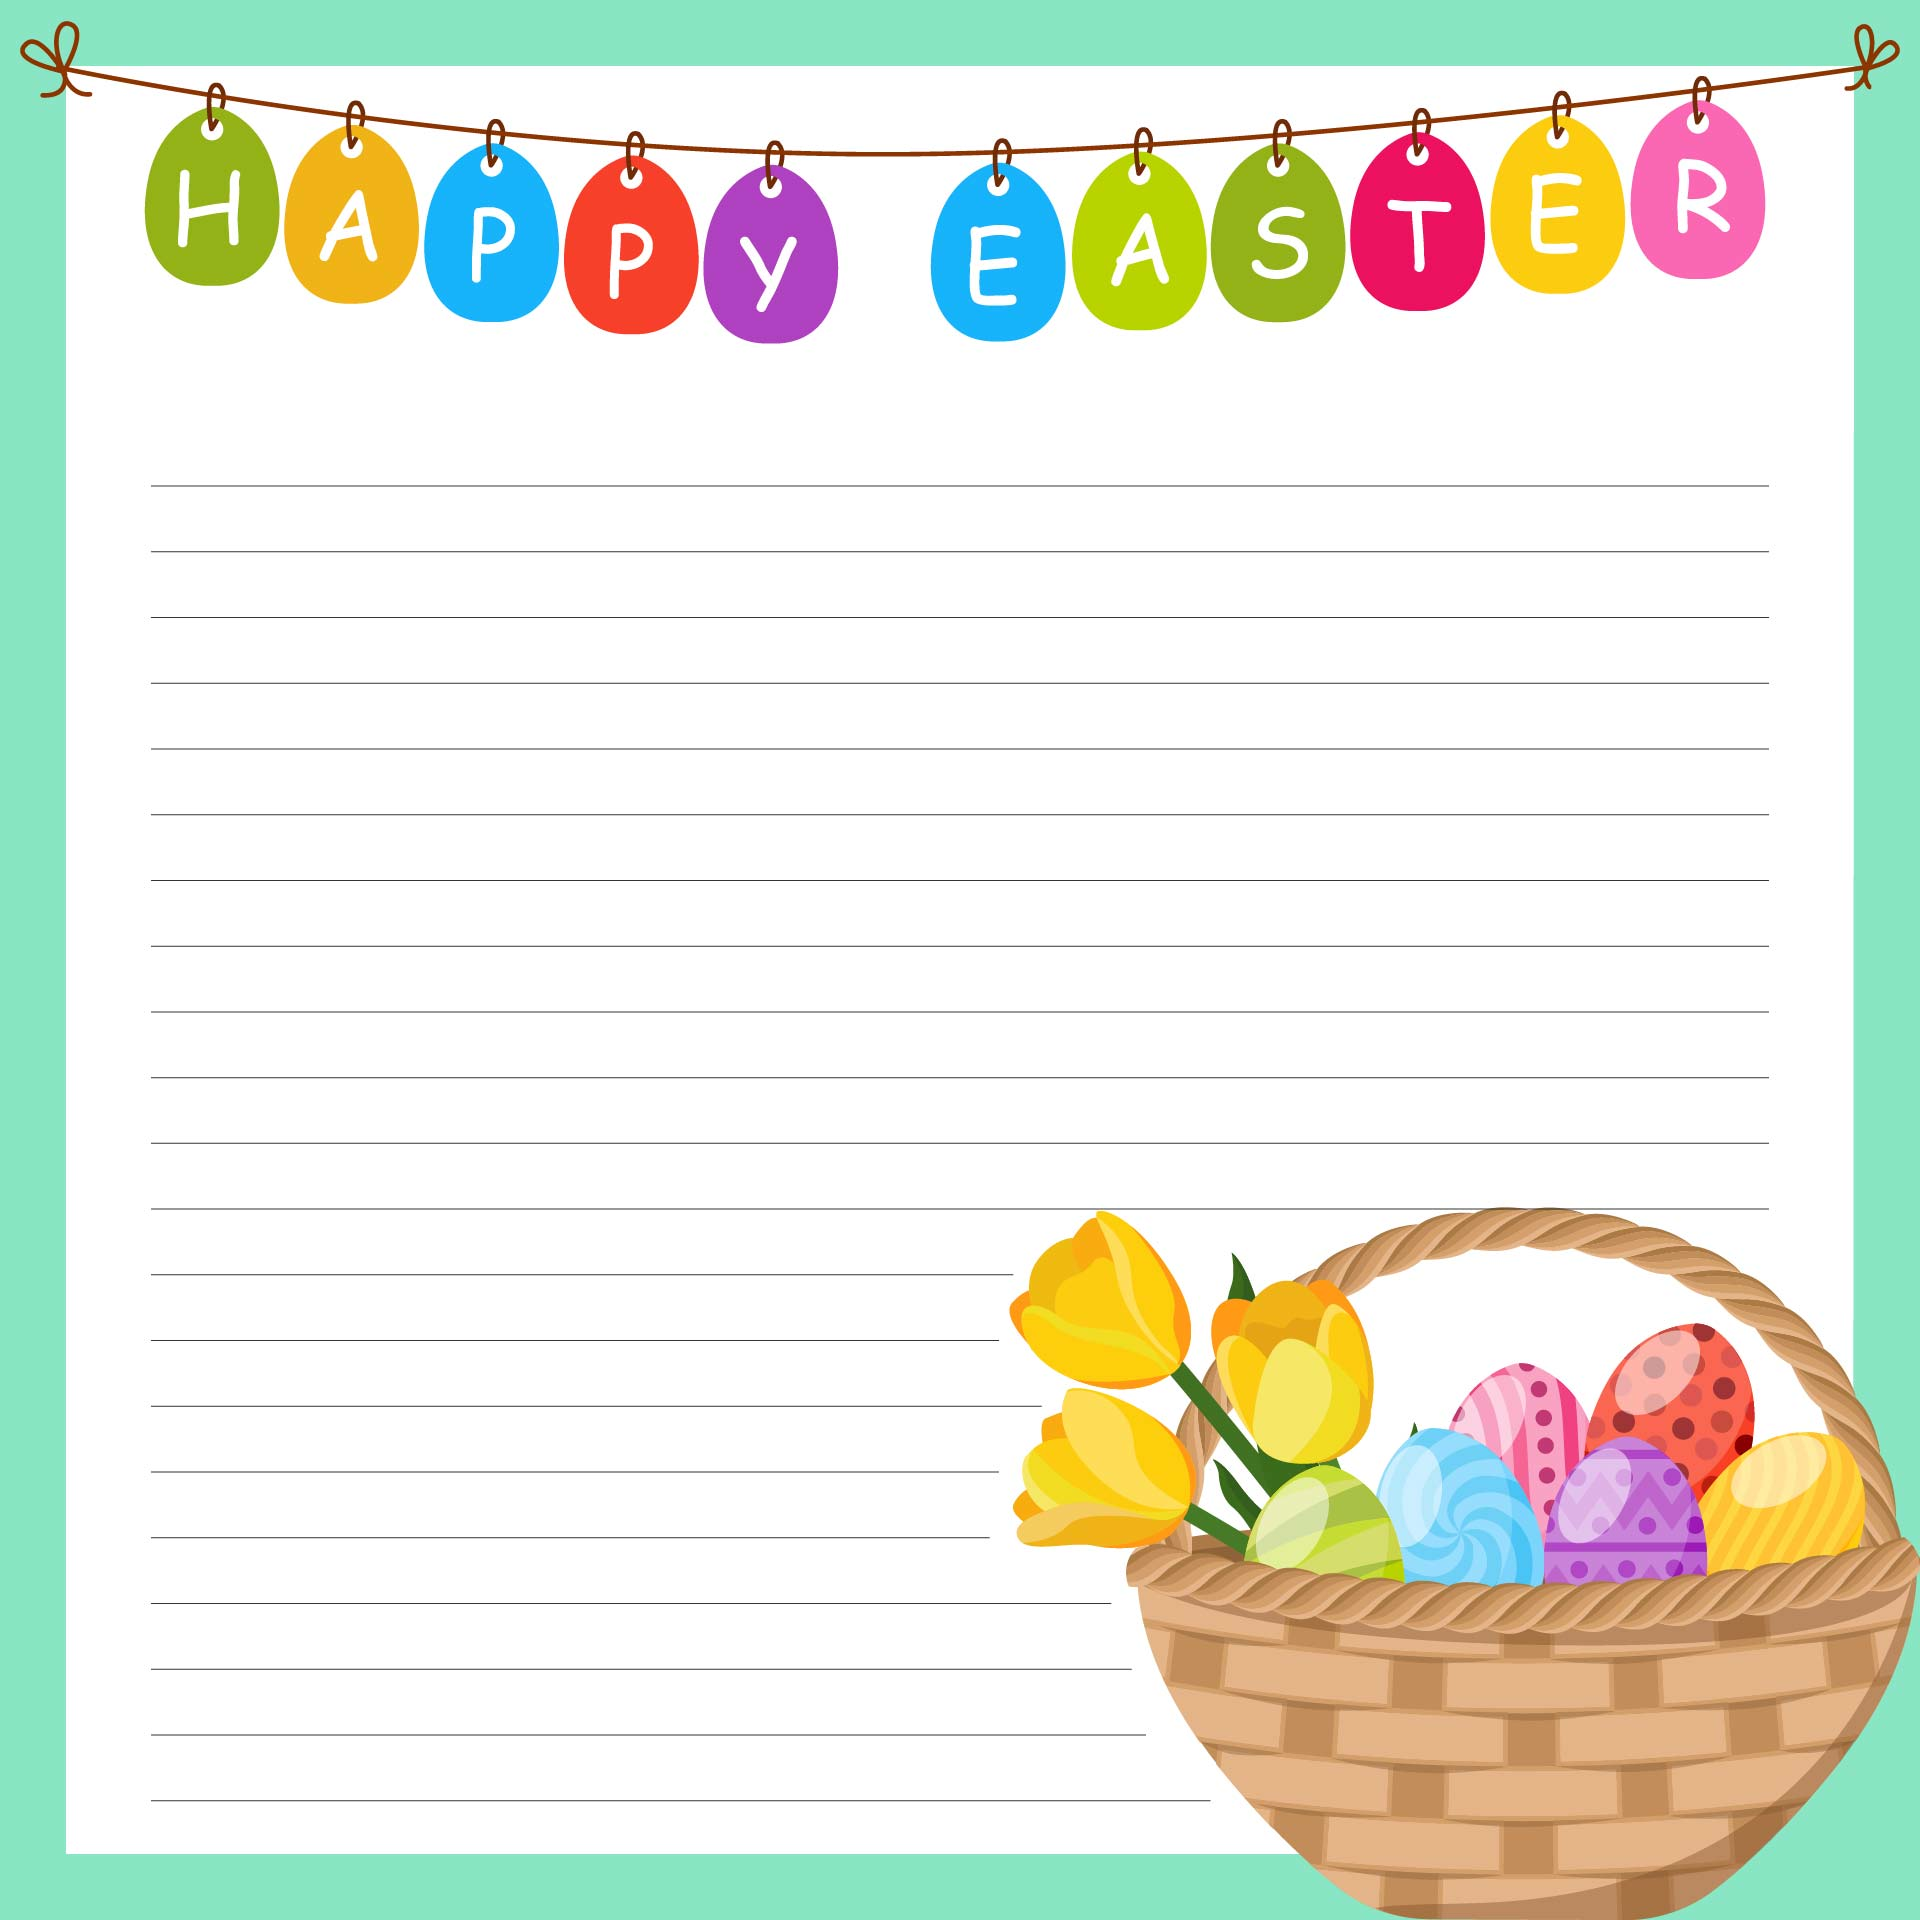 Border printable images gallery category page 11 for Letter to easter bunny template